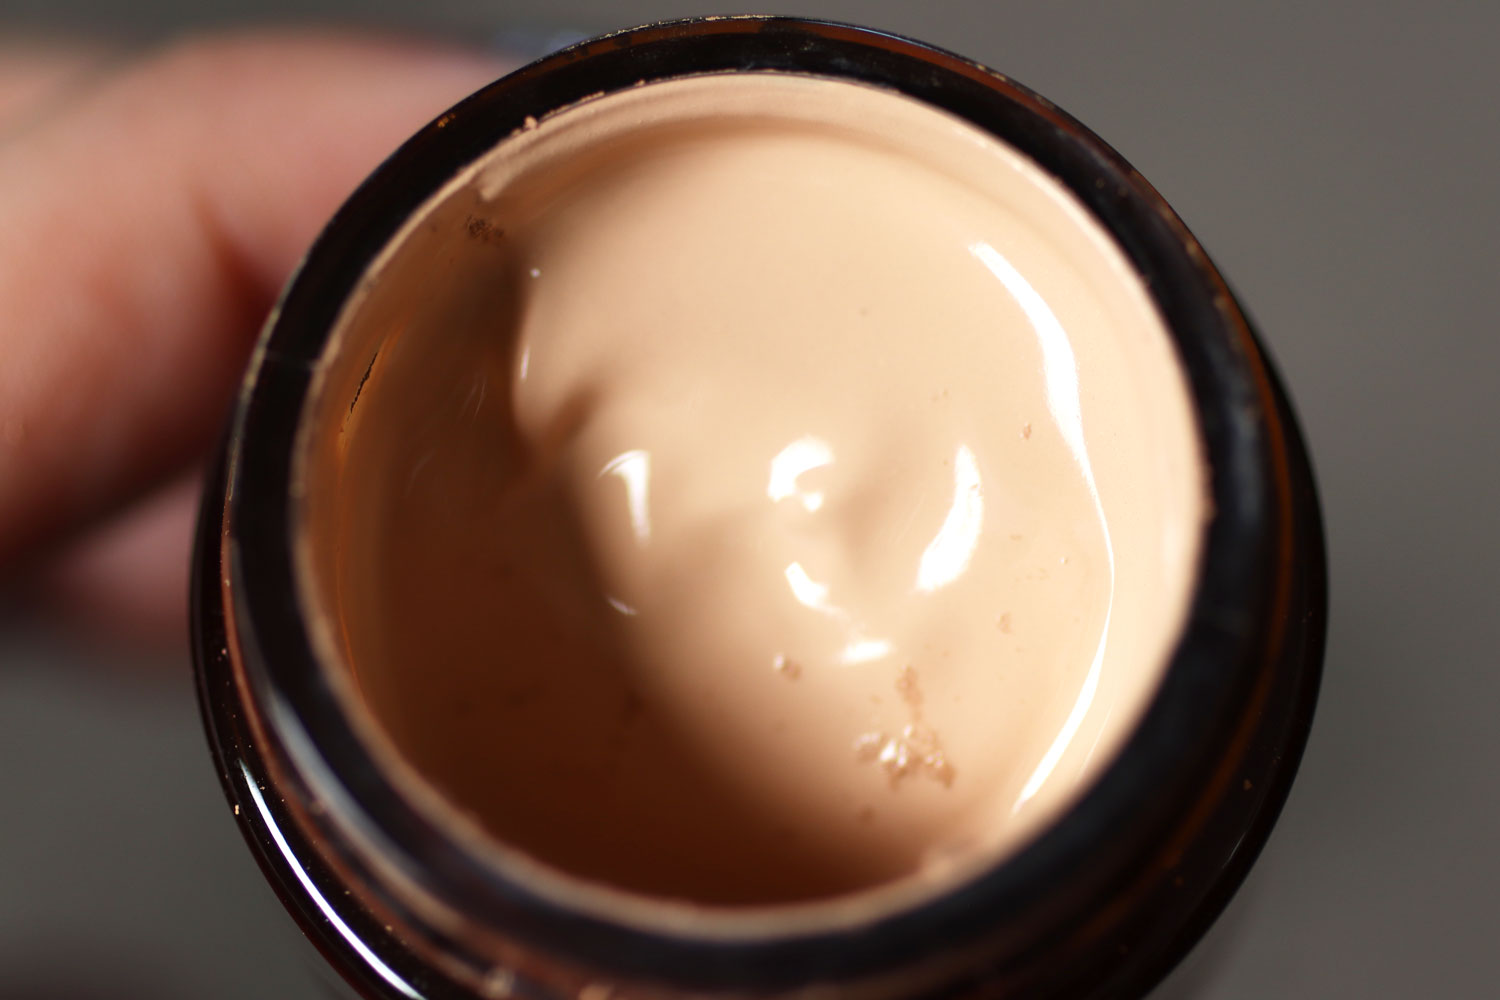 Best cruelty free concealers guide - It Cosmetics Bye Bye Redness review